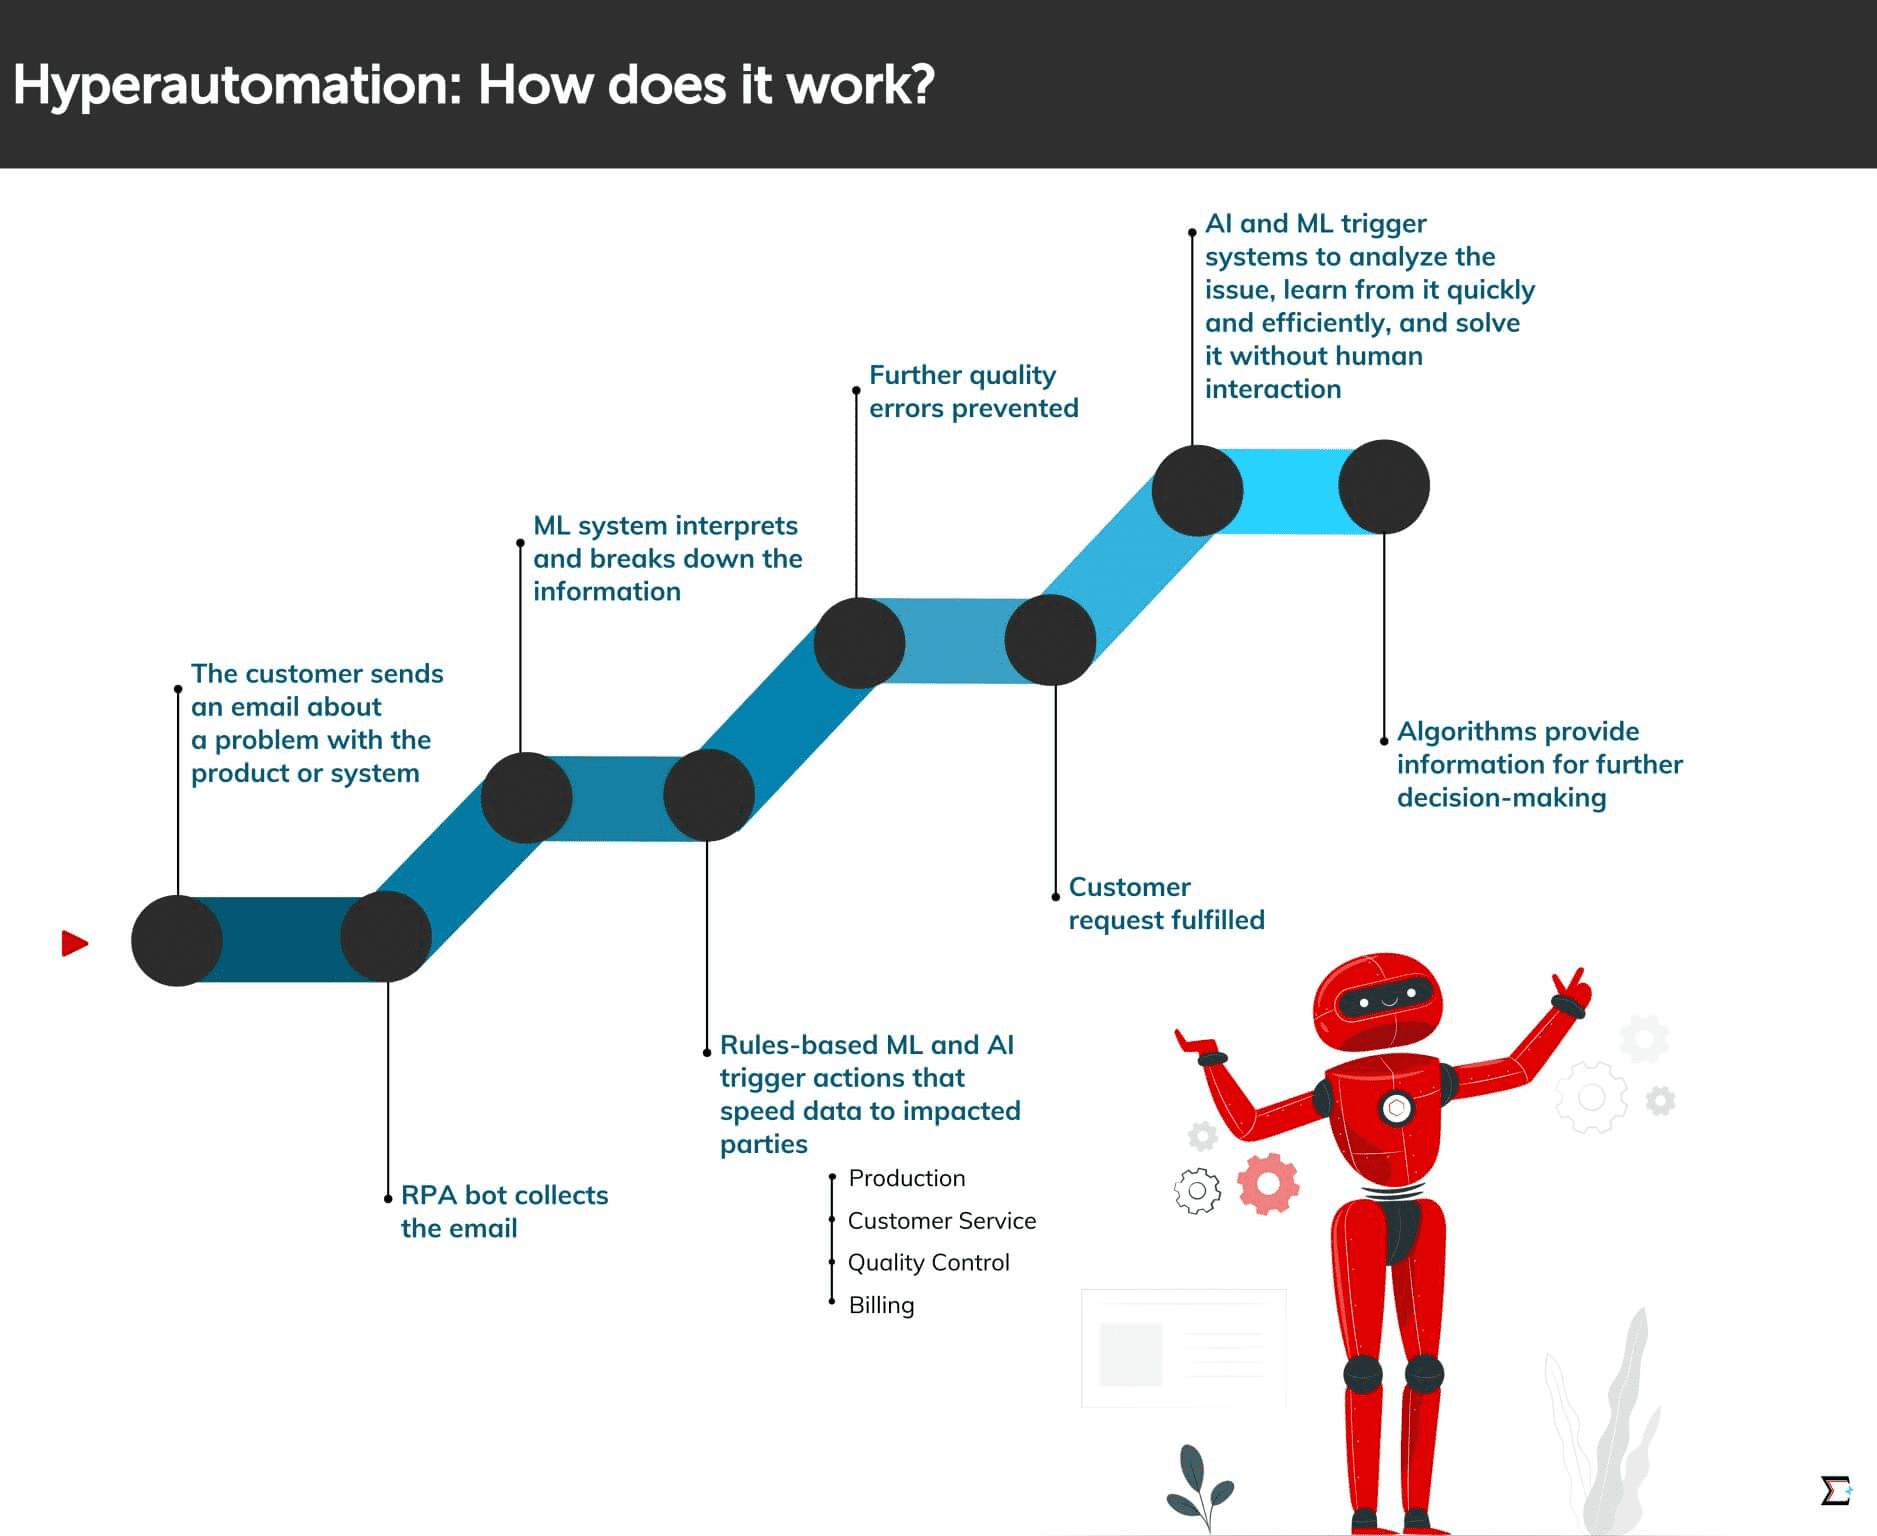 How does Hyperautomation work